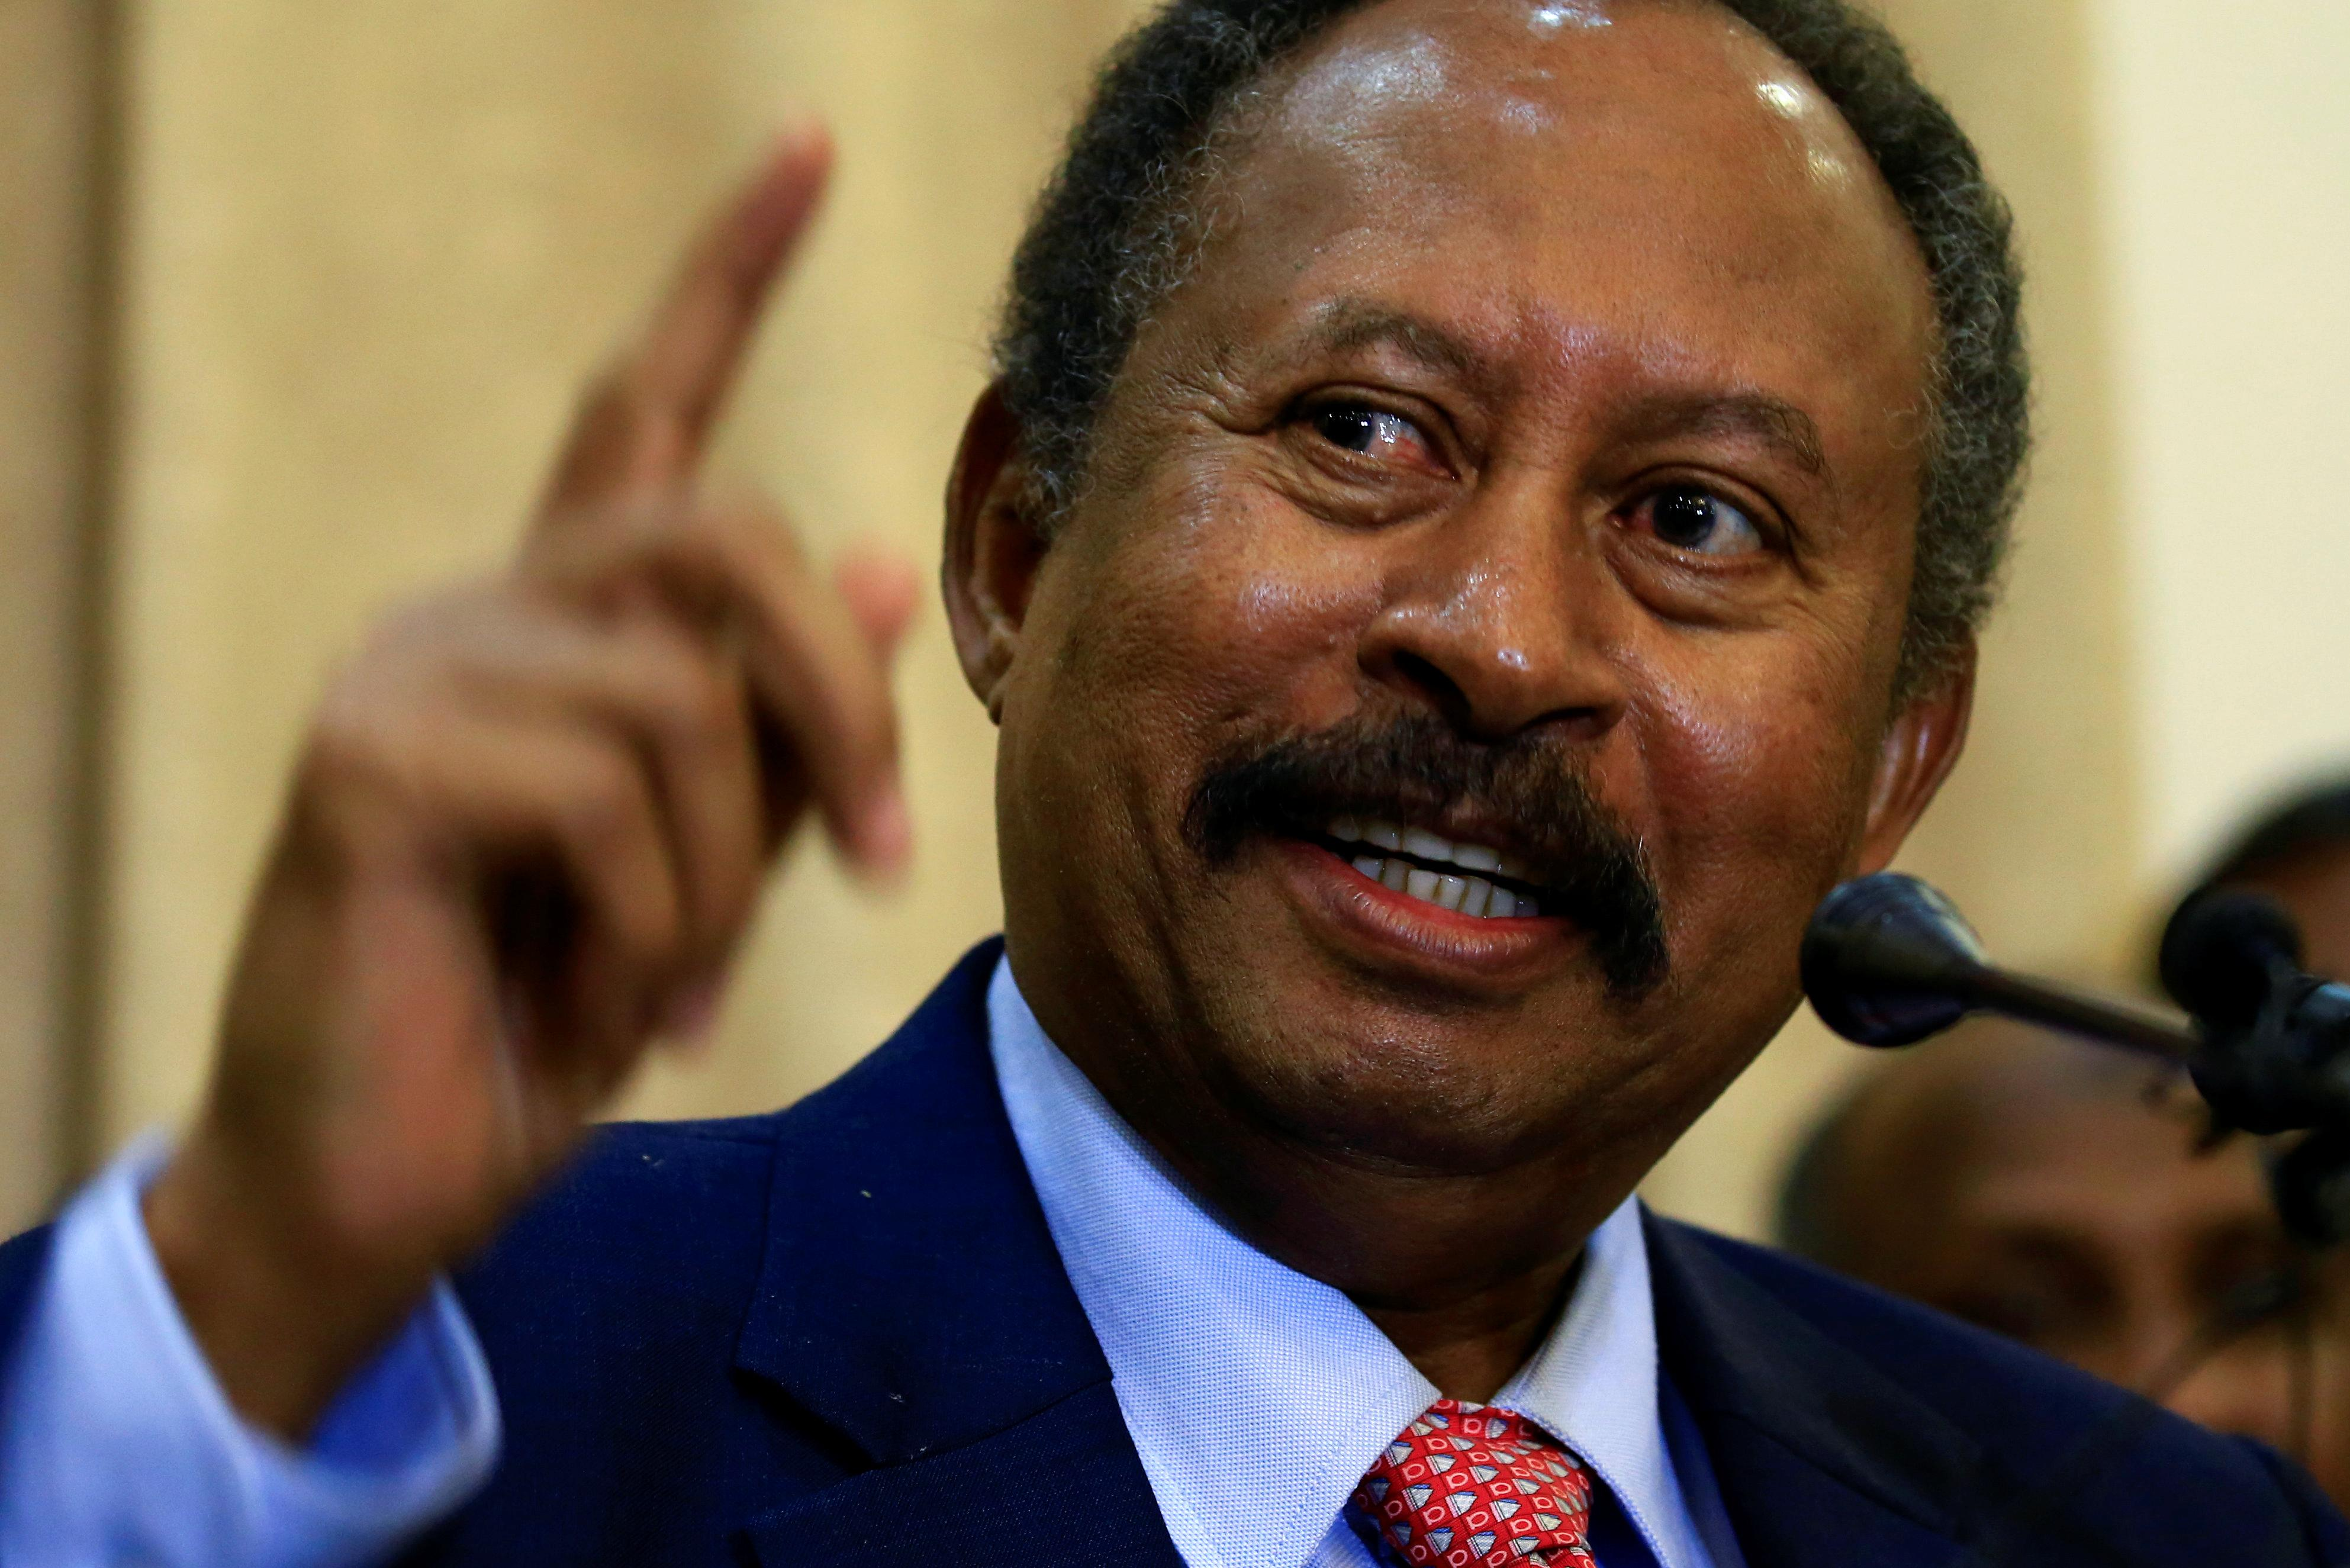 Sudan's Hamdok takes office as new prime minister, vows to tackle conflicts and economy